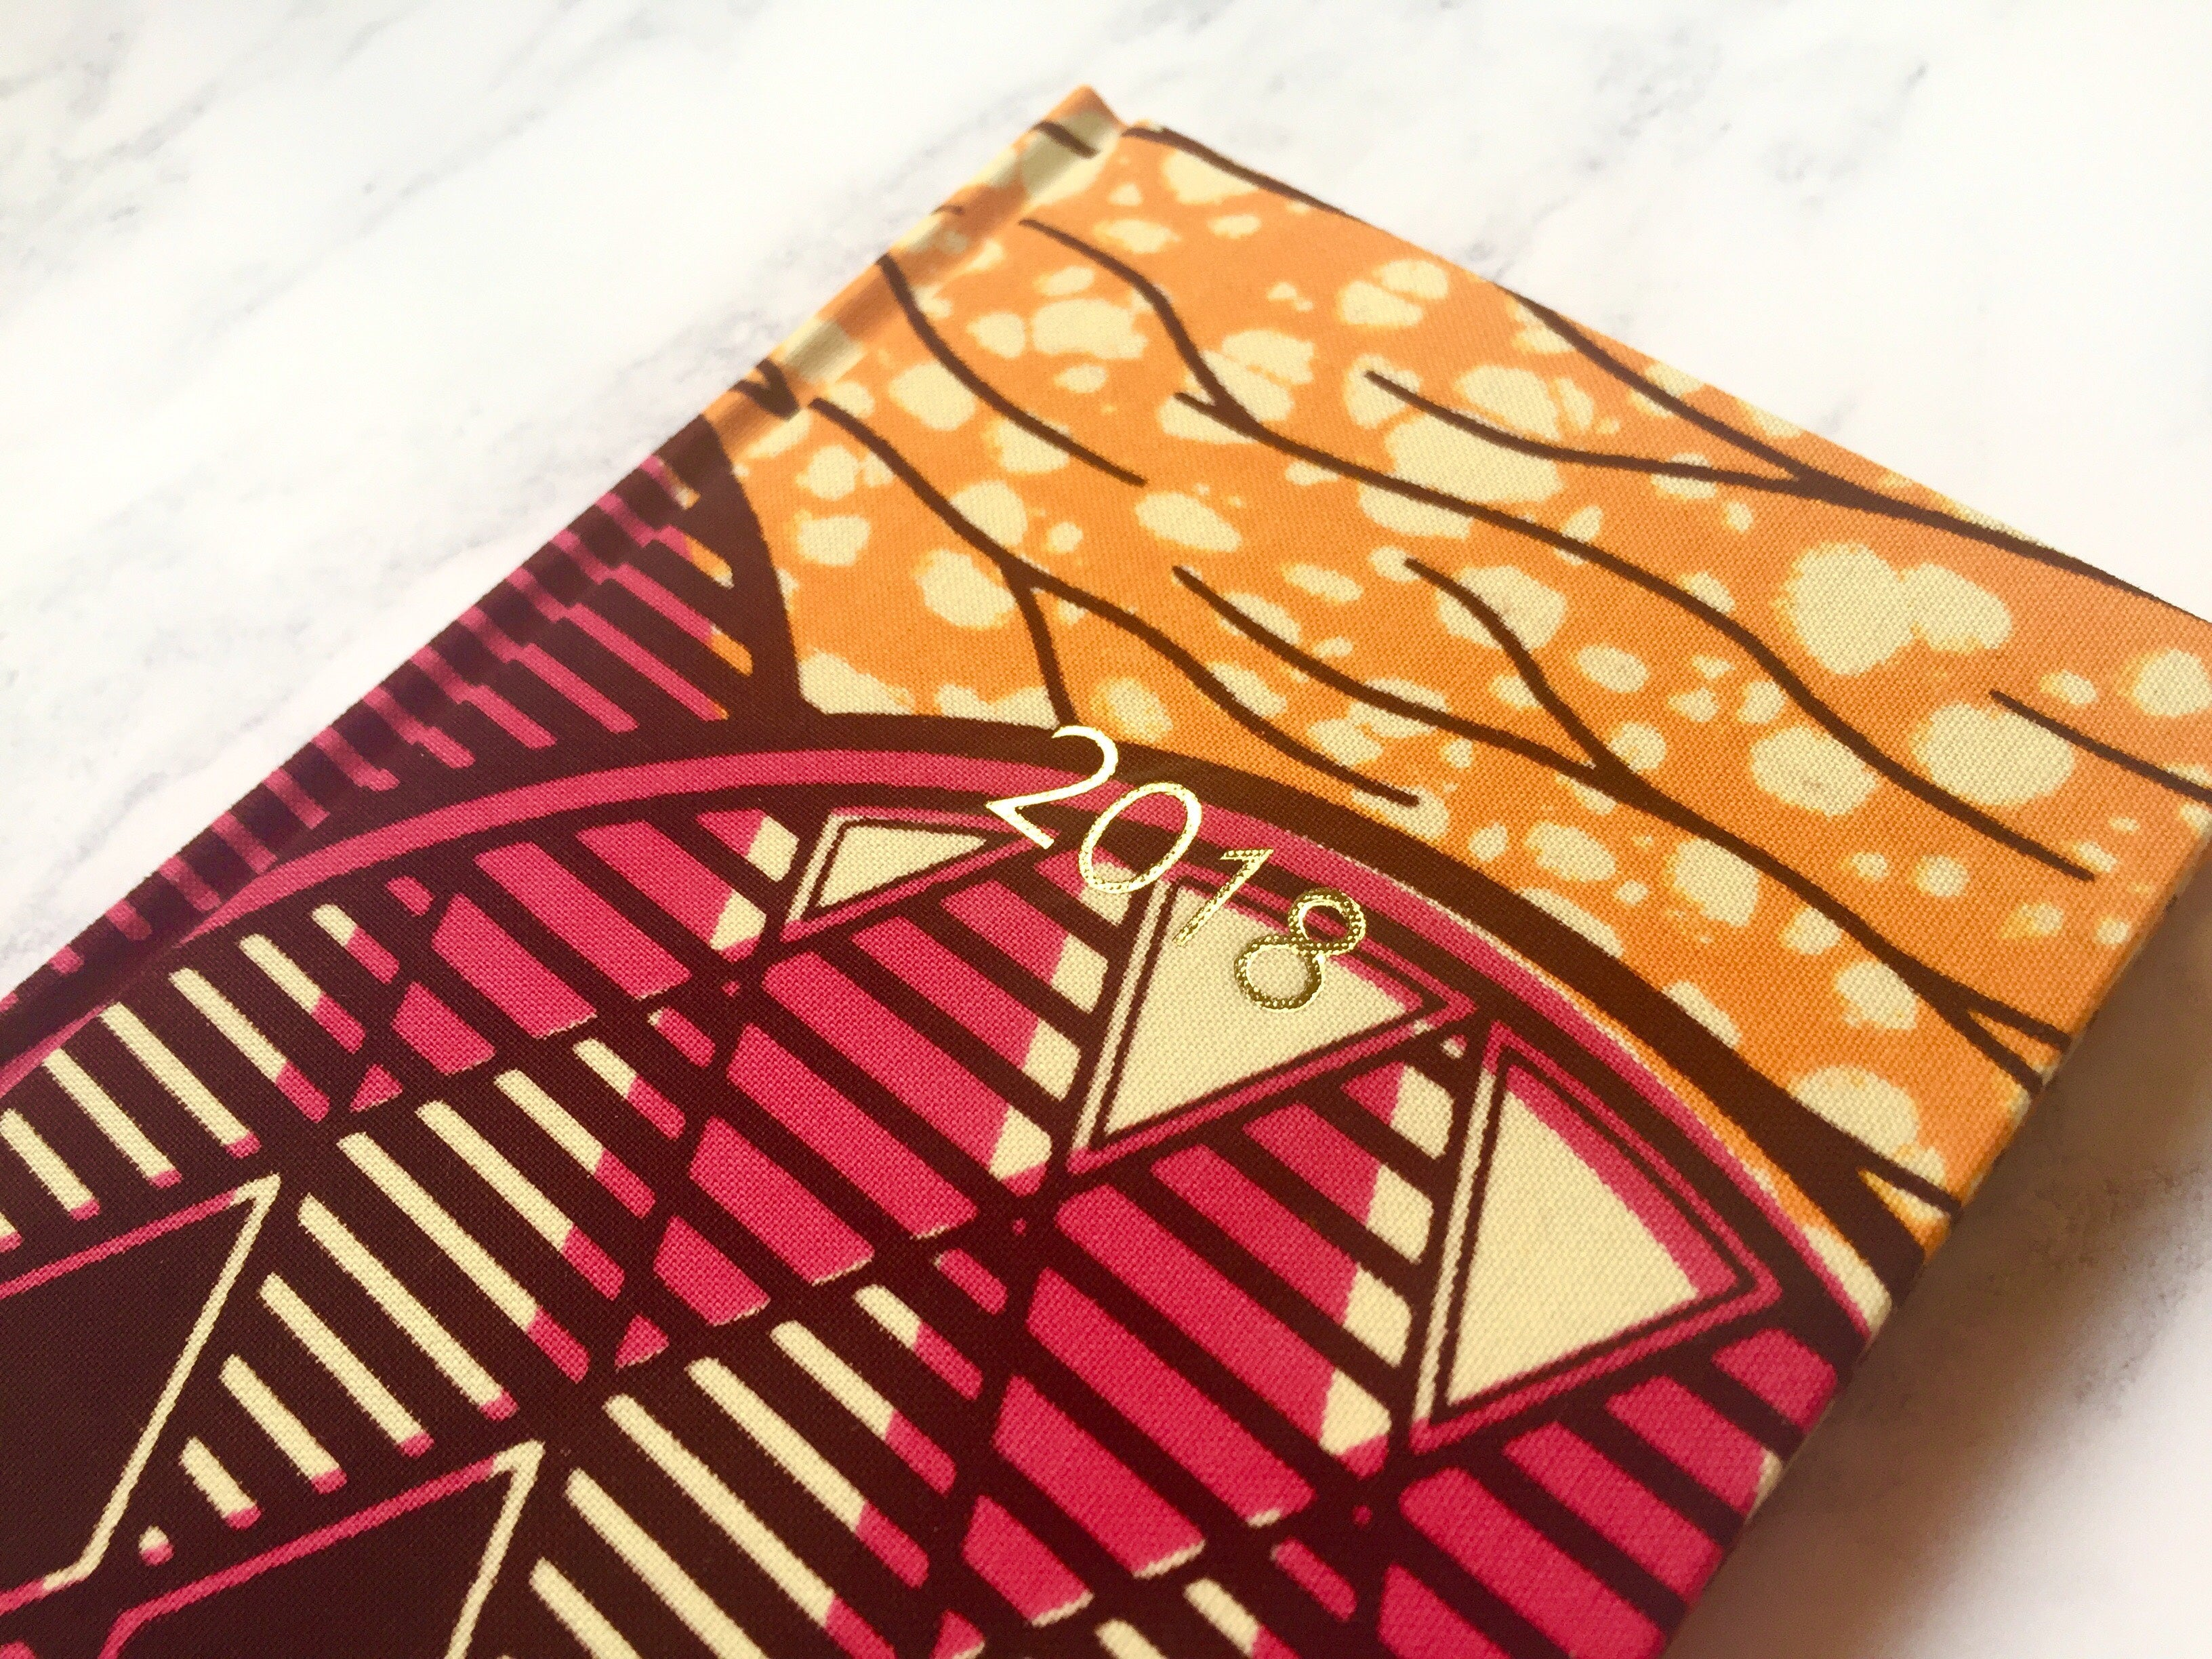 2018 Planner - Pink and Orange African Print A6 Monthly Diary - Bespoke Binny